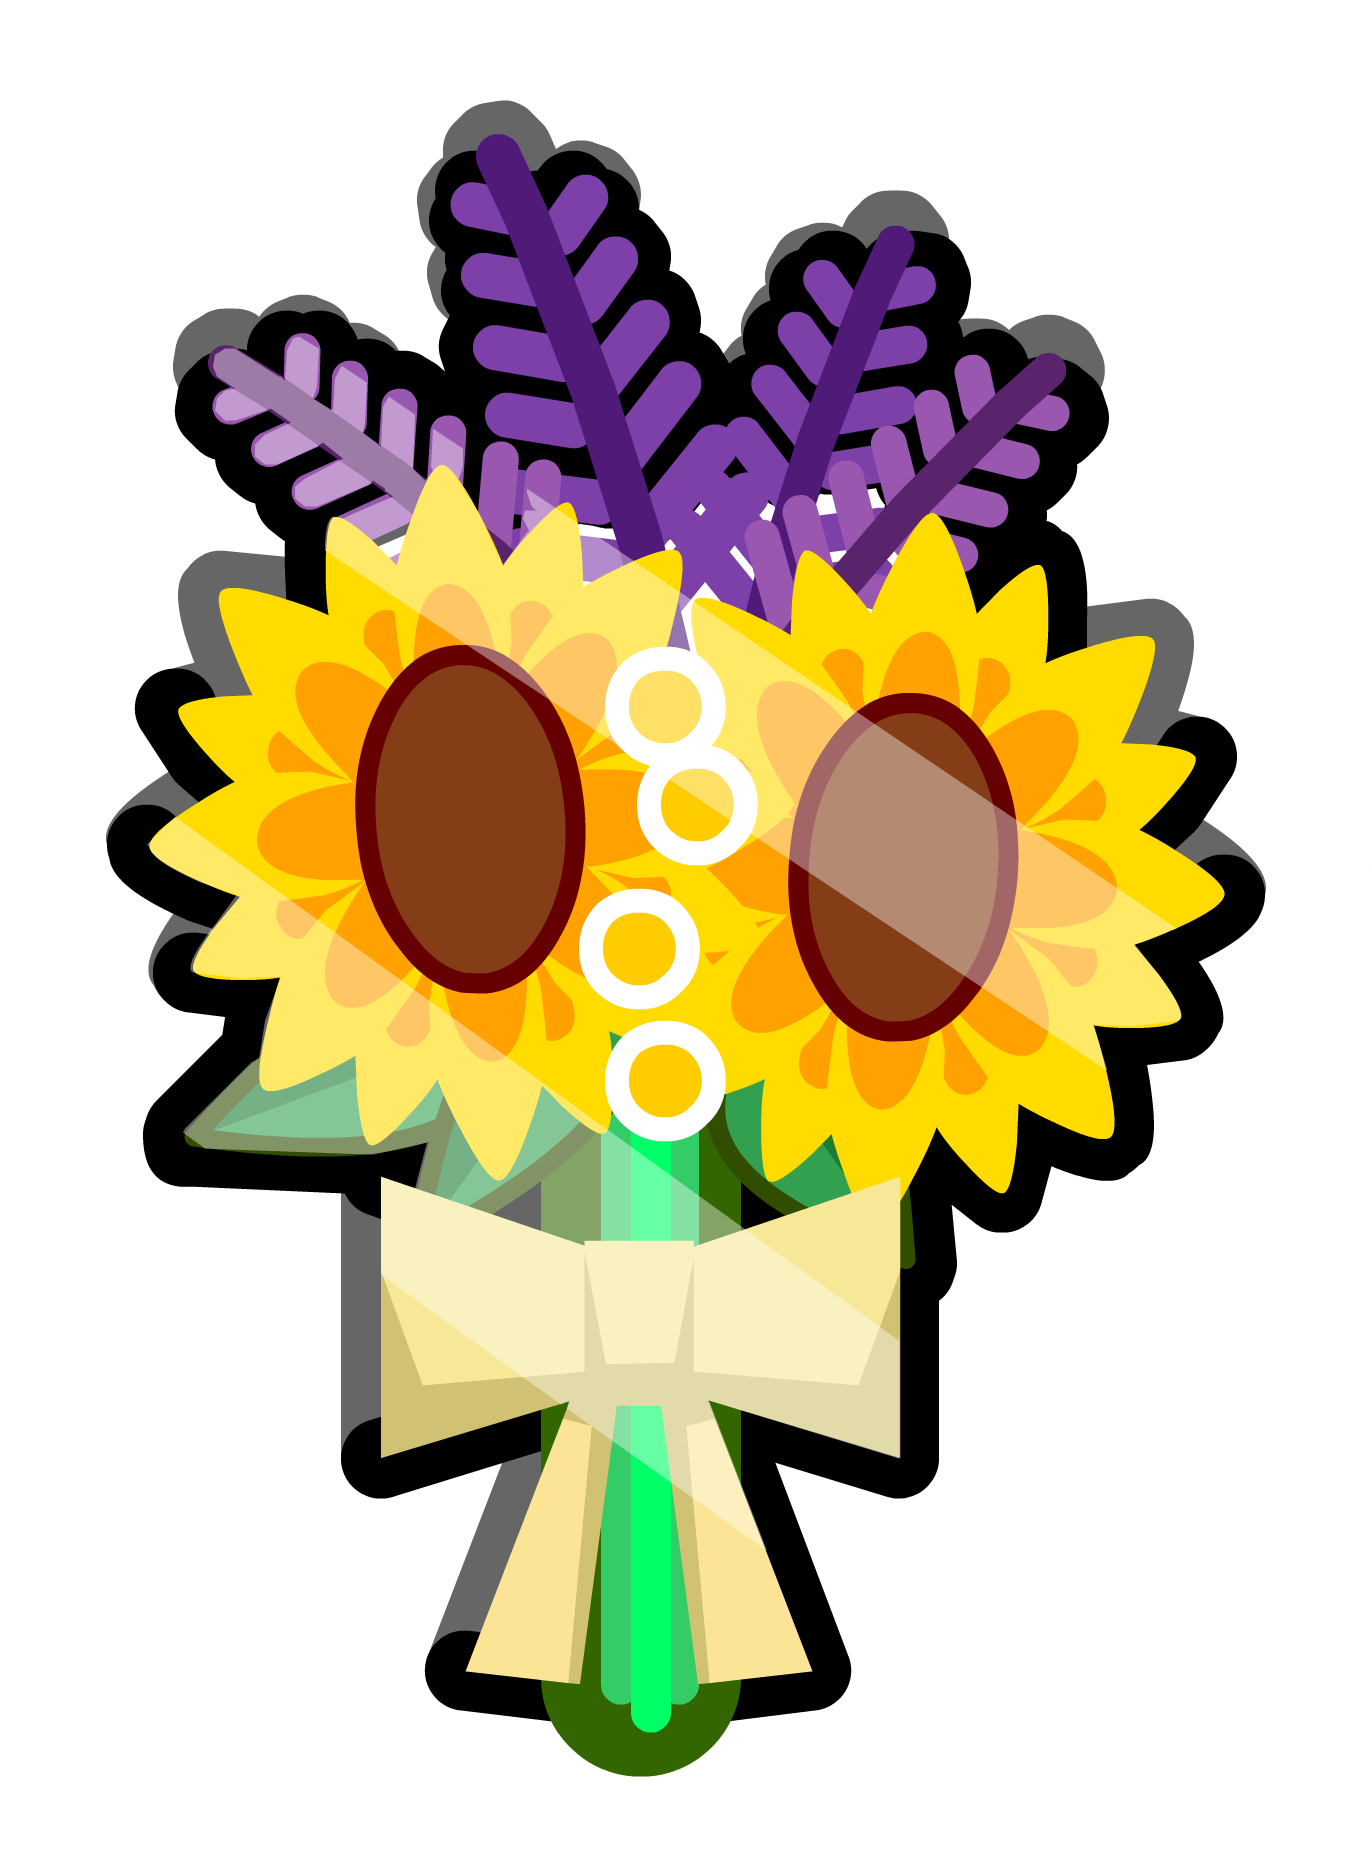 Sunflowers Png Frozen Fever Picture 935239 Sunflowers Png Frozen